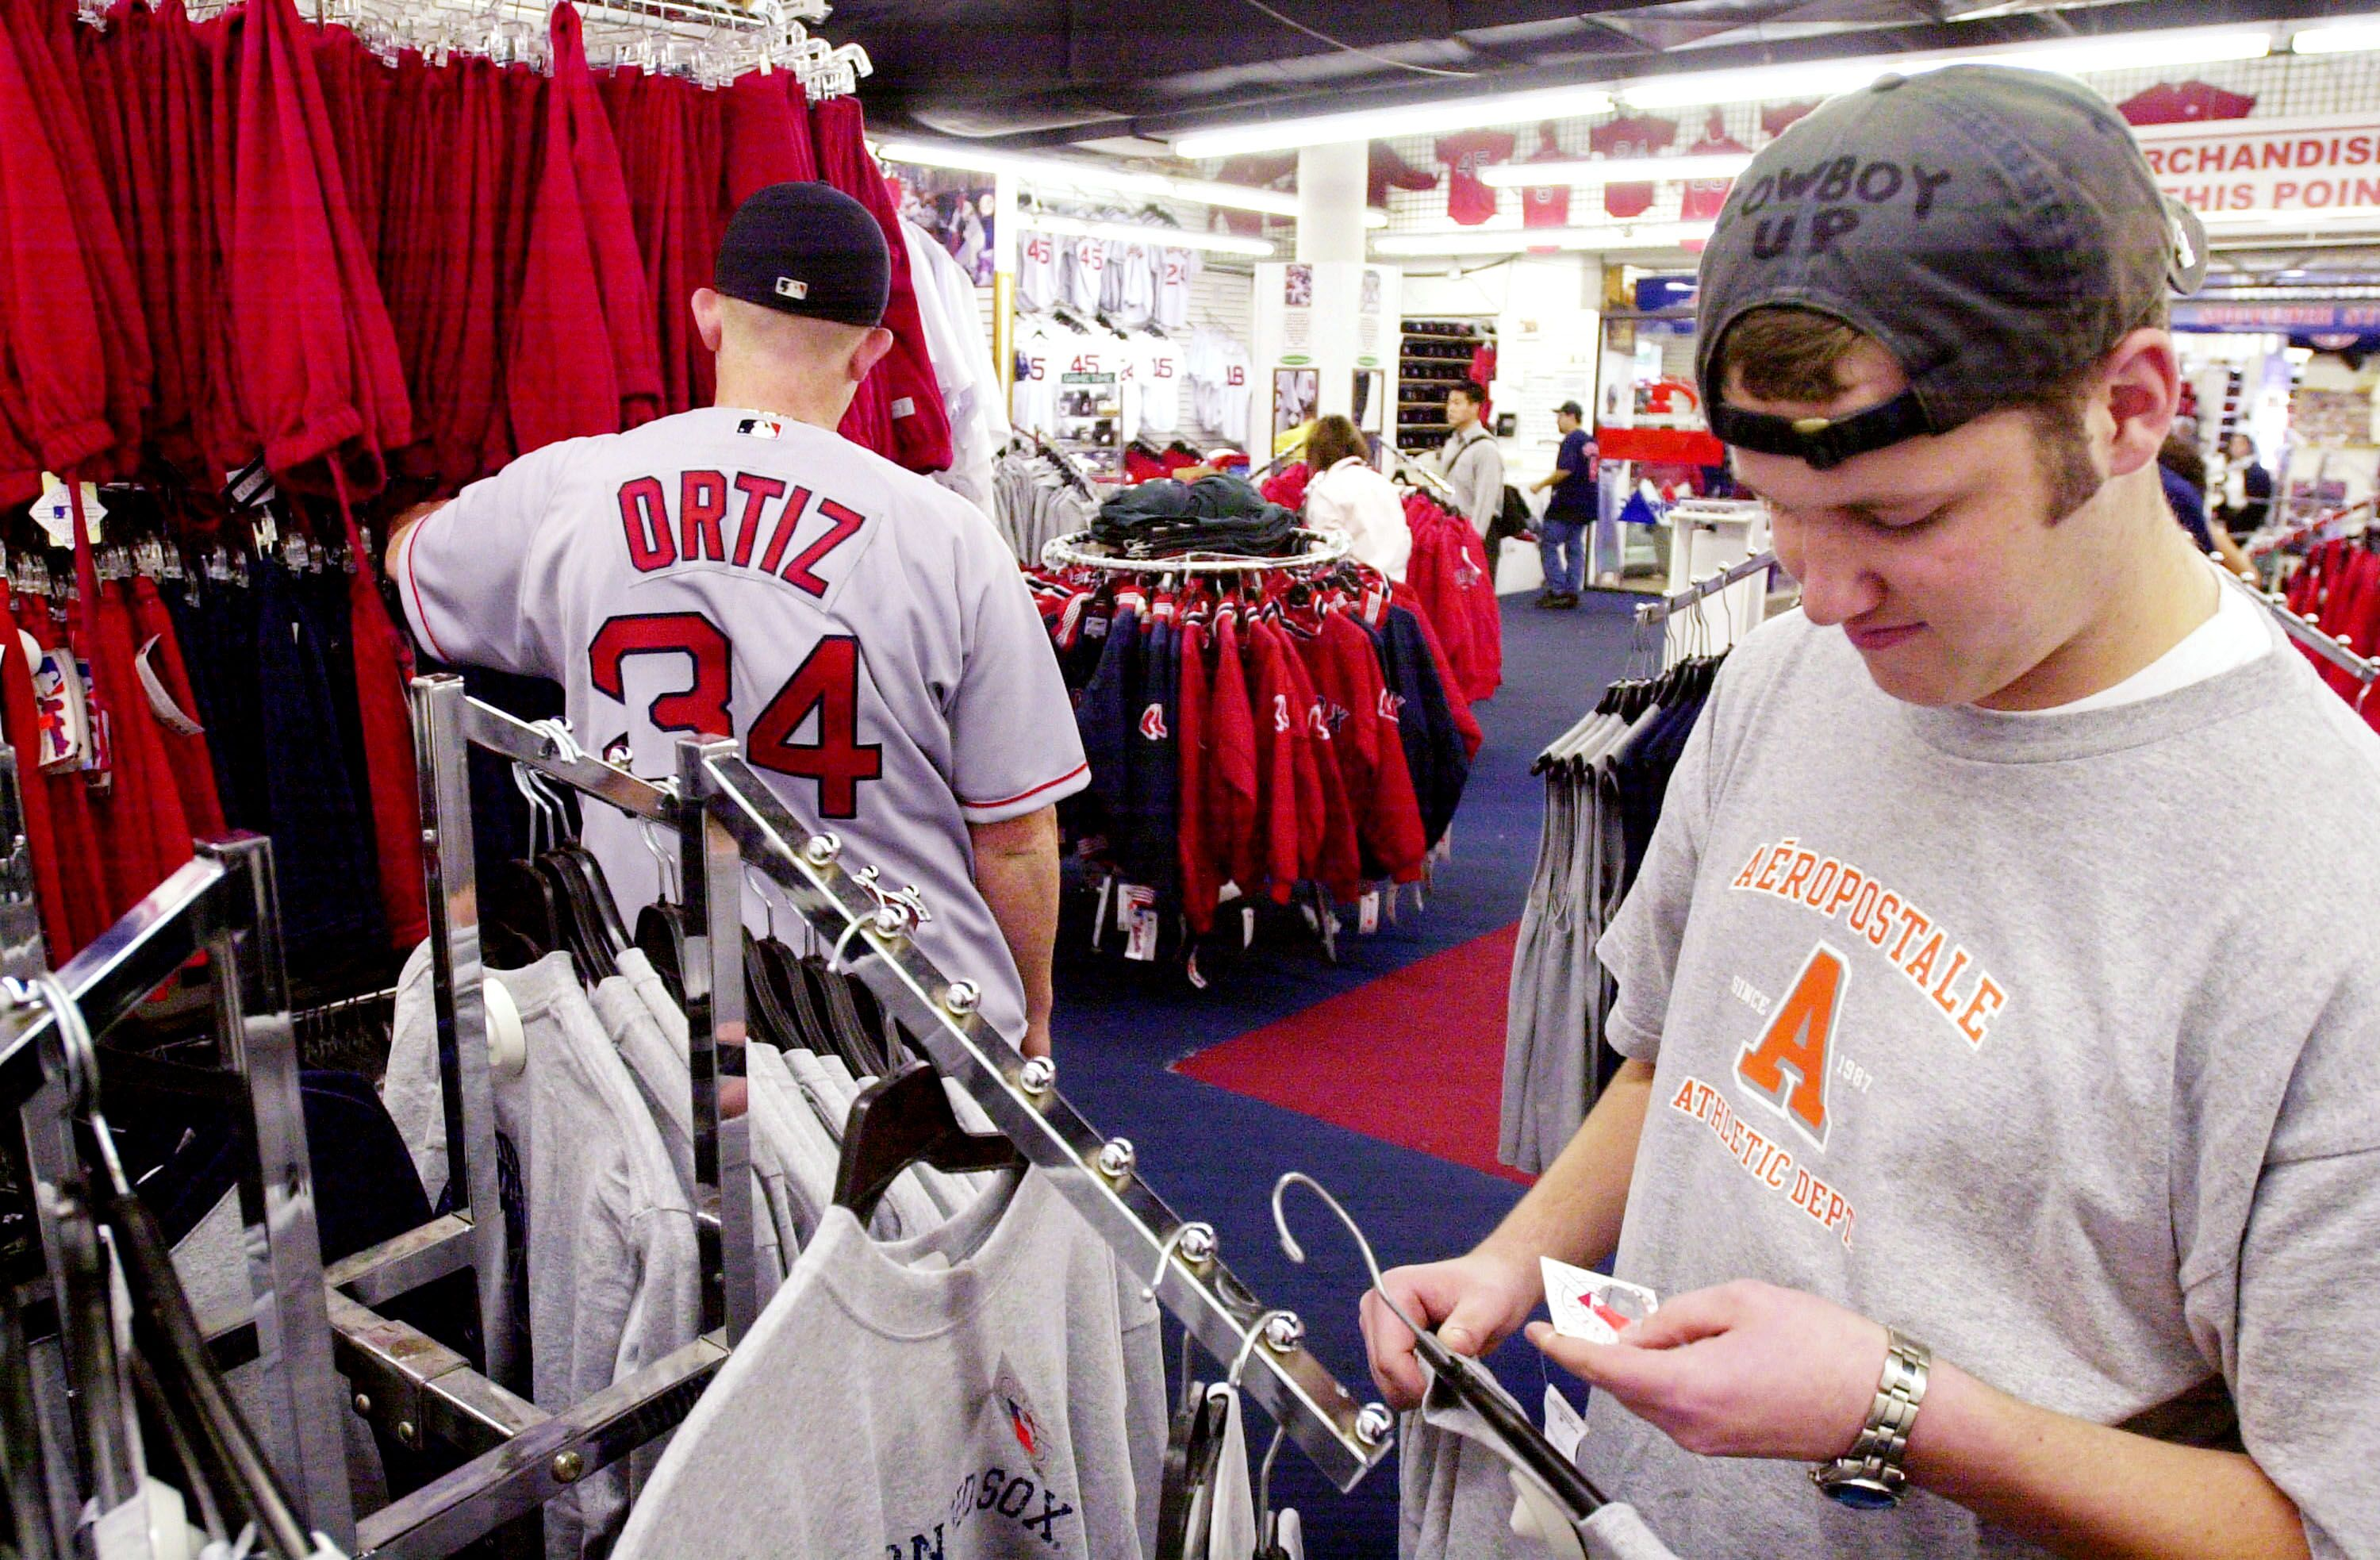 Red Sox: Could jersey sales plummet this season?